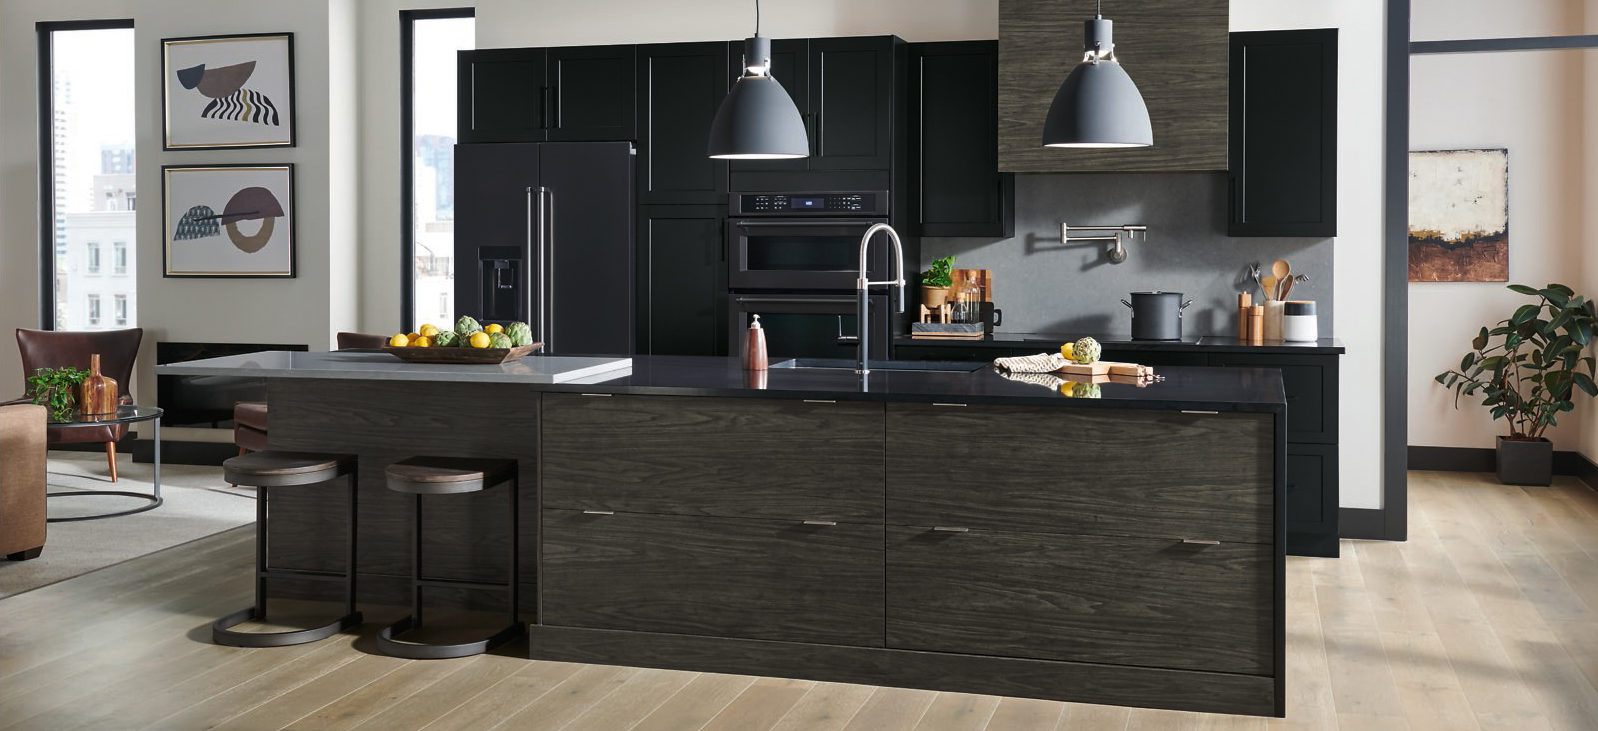 The Knowledge, Experience and Tools to Make Your Dream Kitchen a Reality